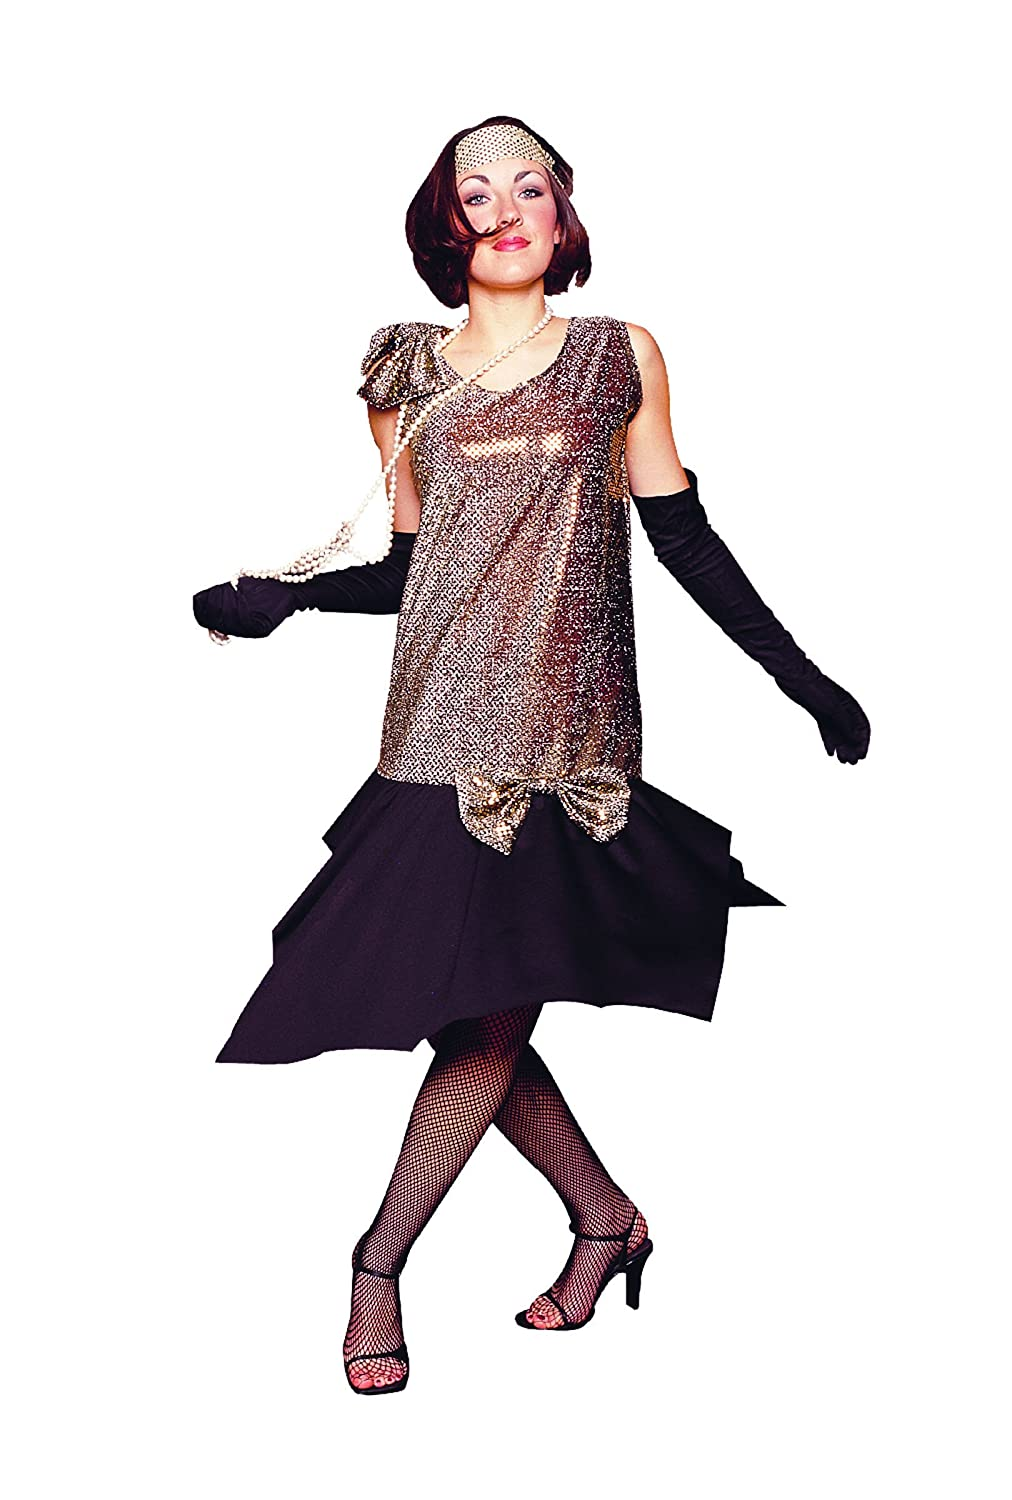 1920s Costumes: Flapper, Great Gatsby, Gangster Girl Rag Time Flapper $28.30 AT vintagedancer.com